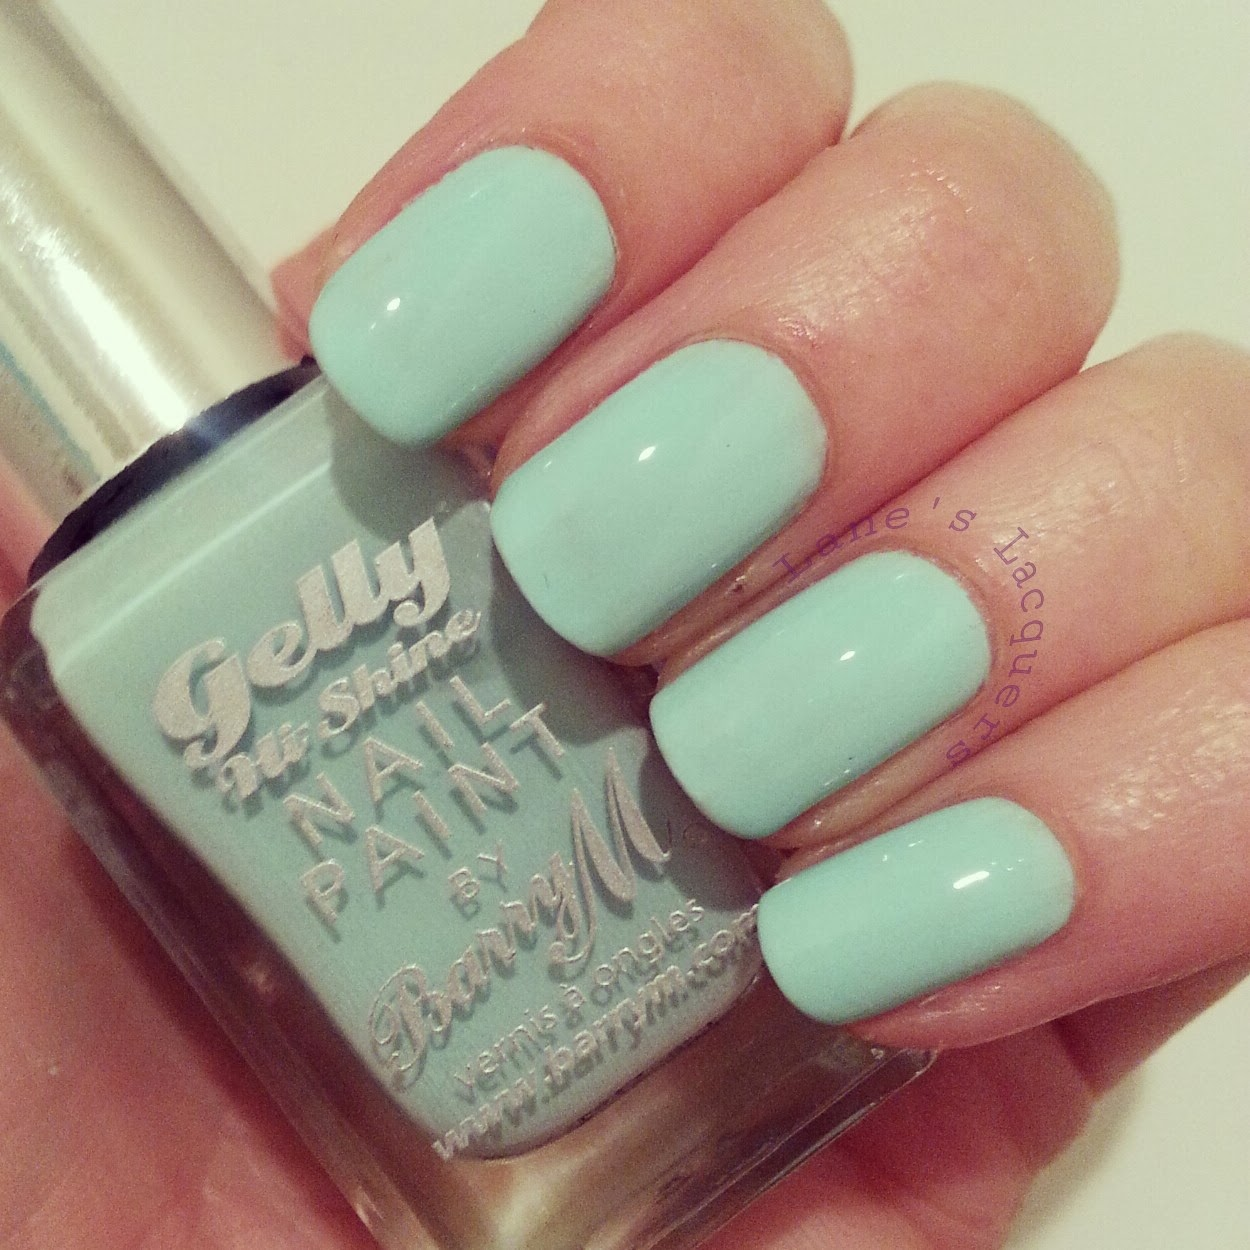 new-barry-m-gelly-nail-polish-sugar-apple-swatch-nails